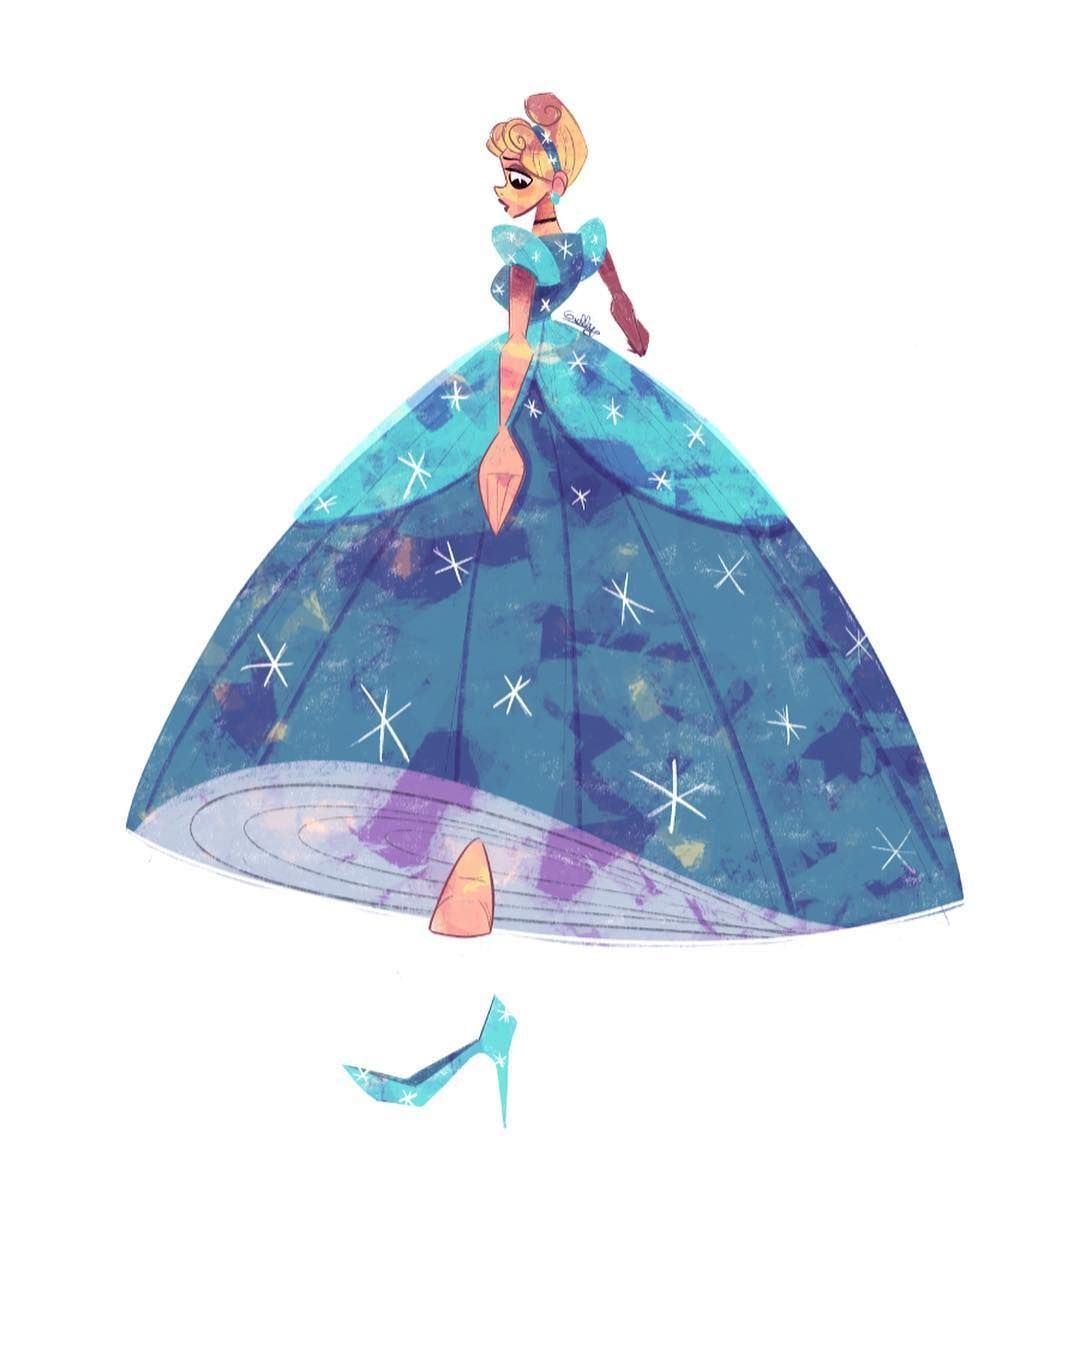 Pin by Kayleigh on Disney Princess in 2020 Disney and